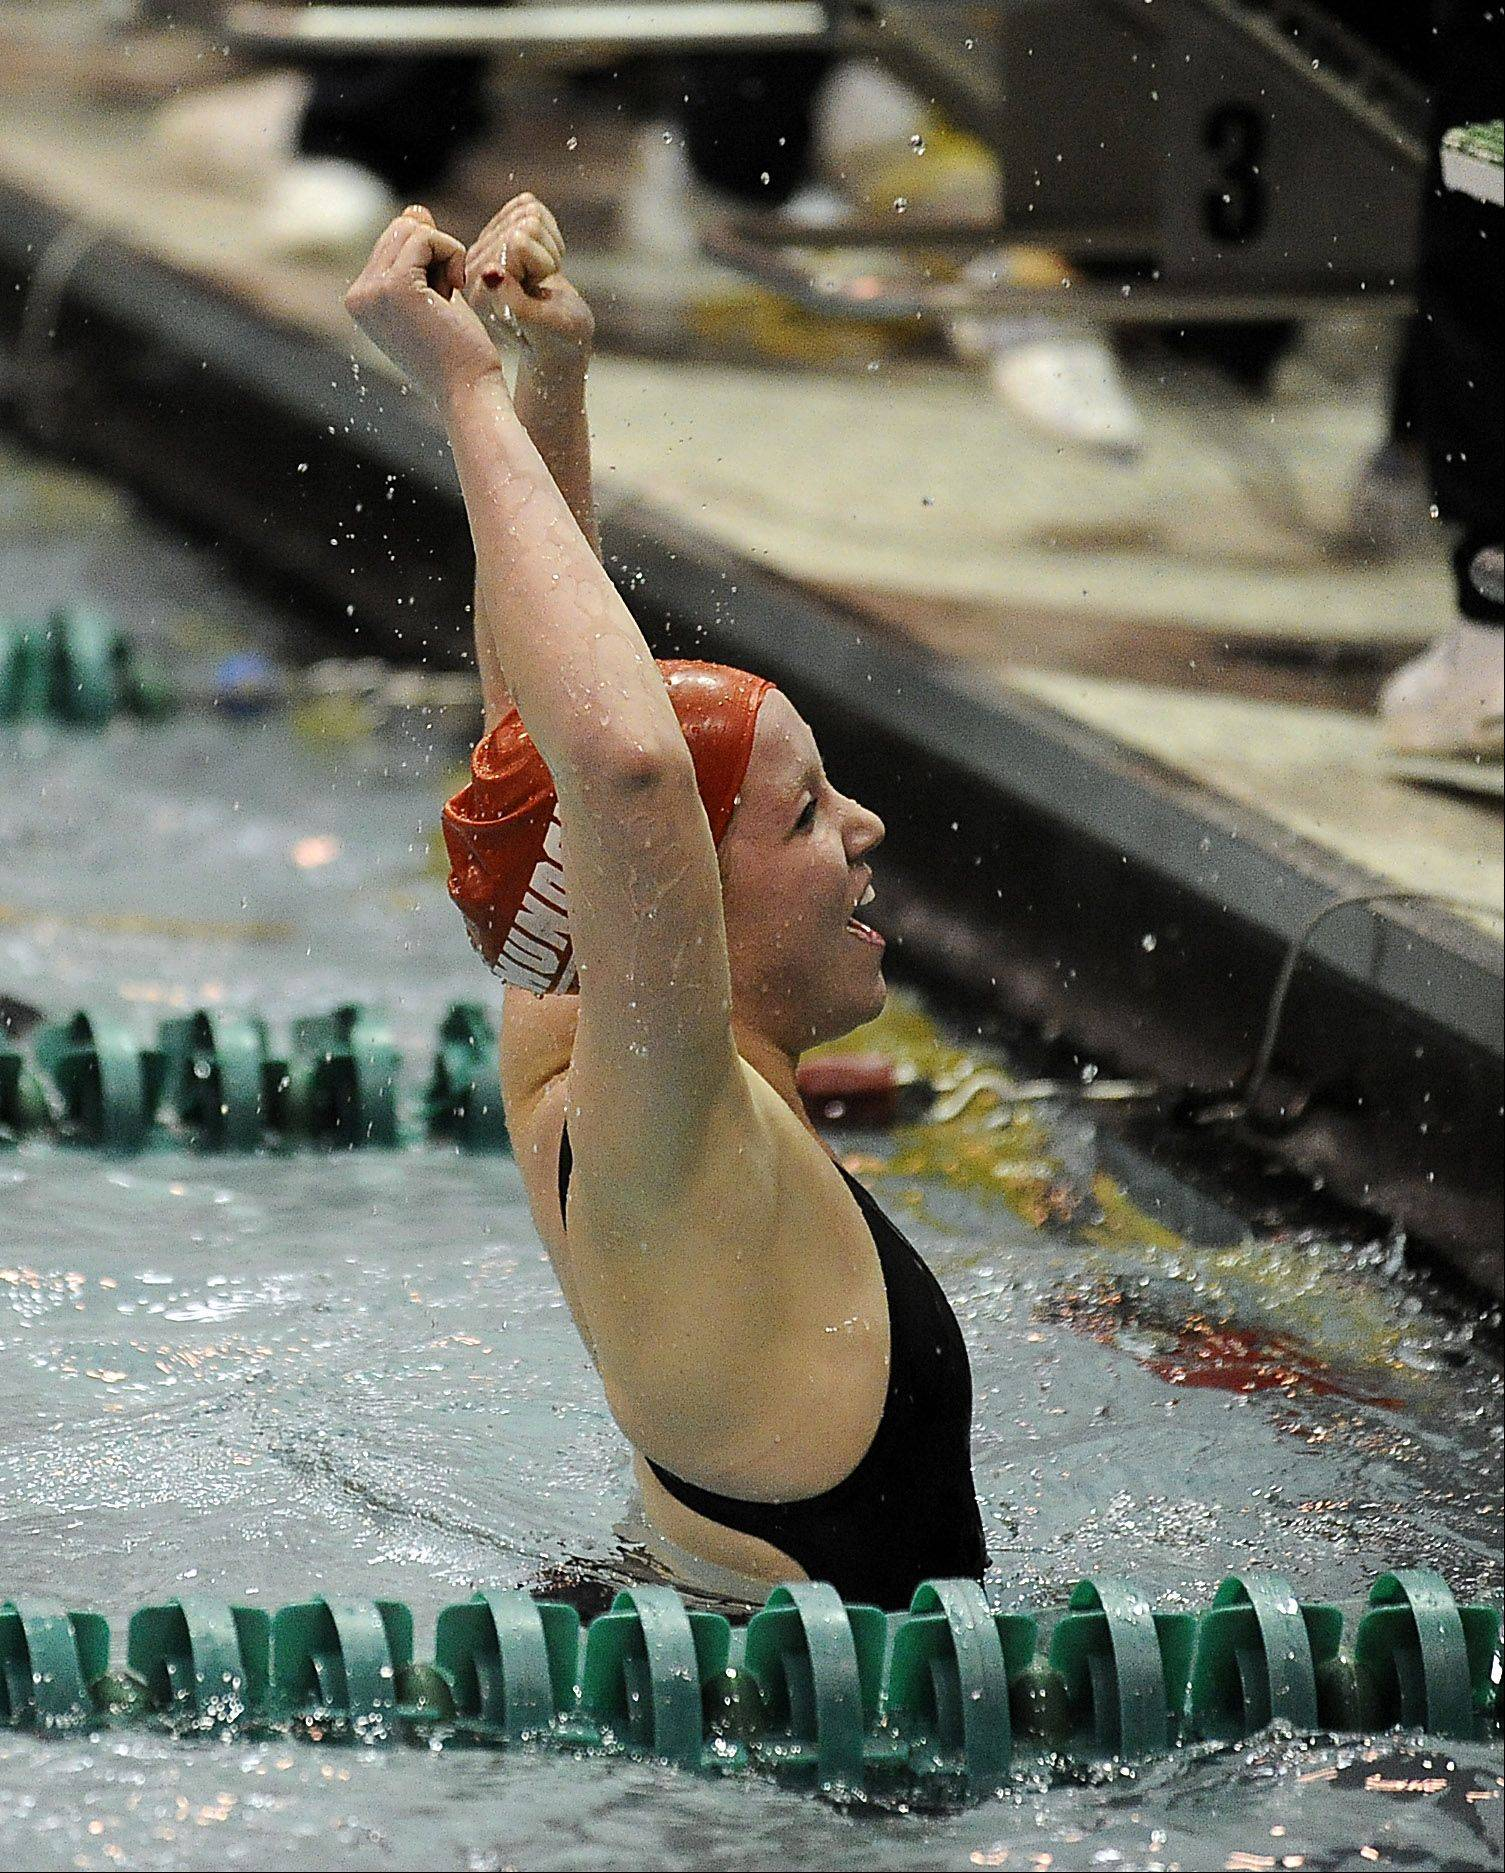 Mundelein's Erin Falconer celebrates her effort in 200-yard freestyle at the girls swimming state prelims at New Trier High School on Friday.